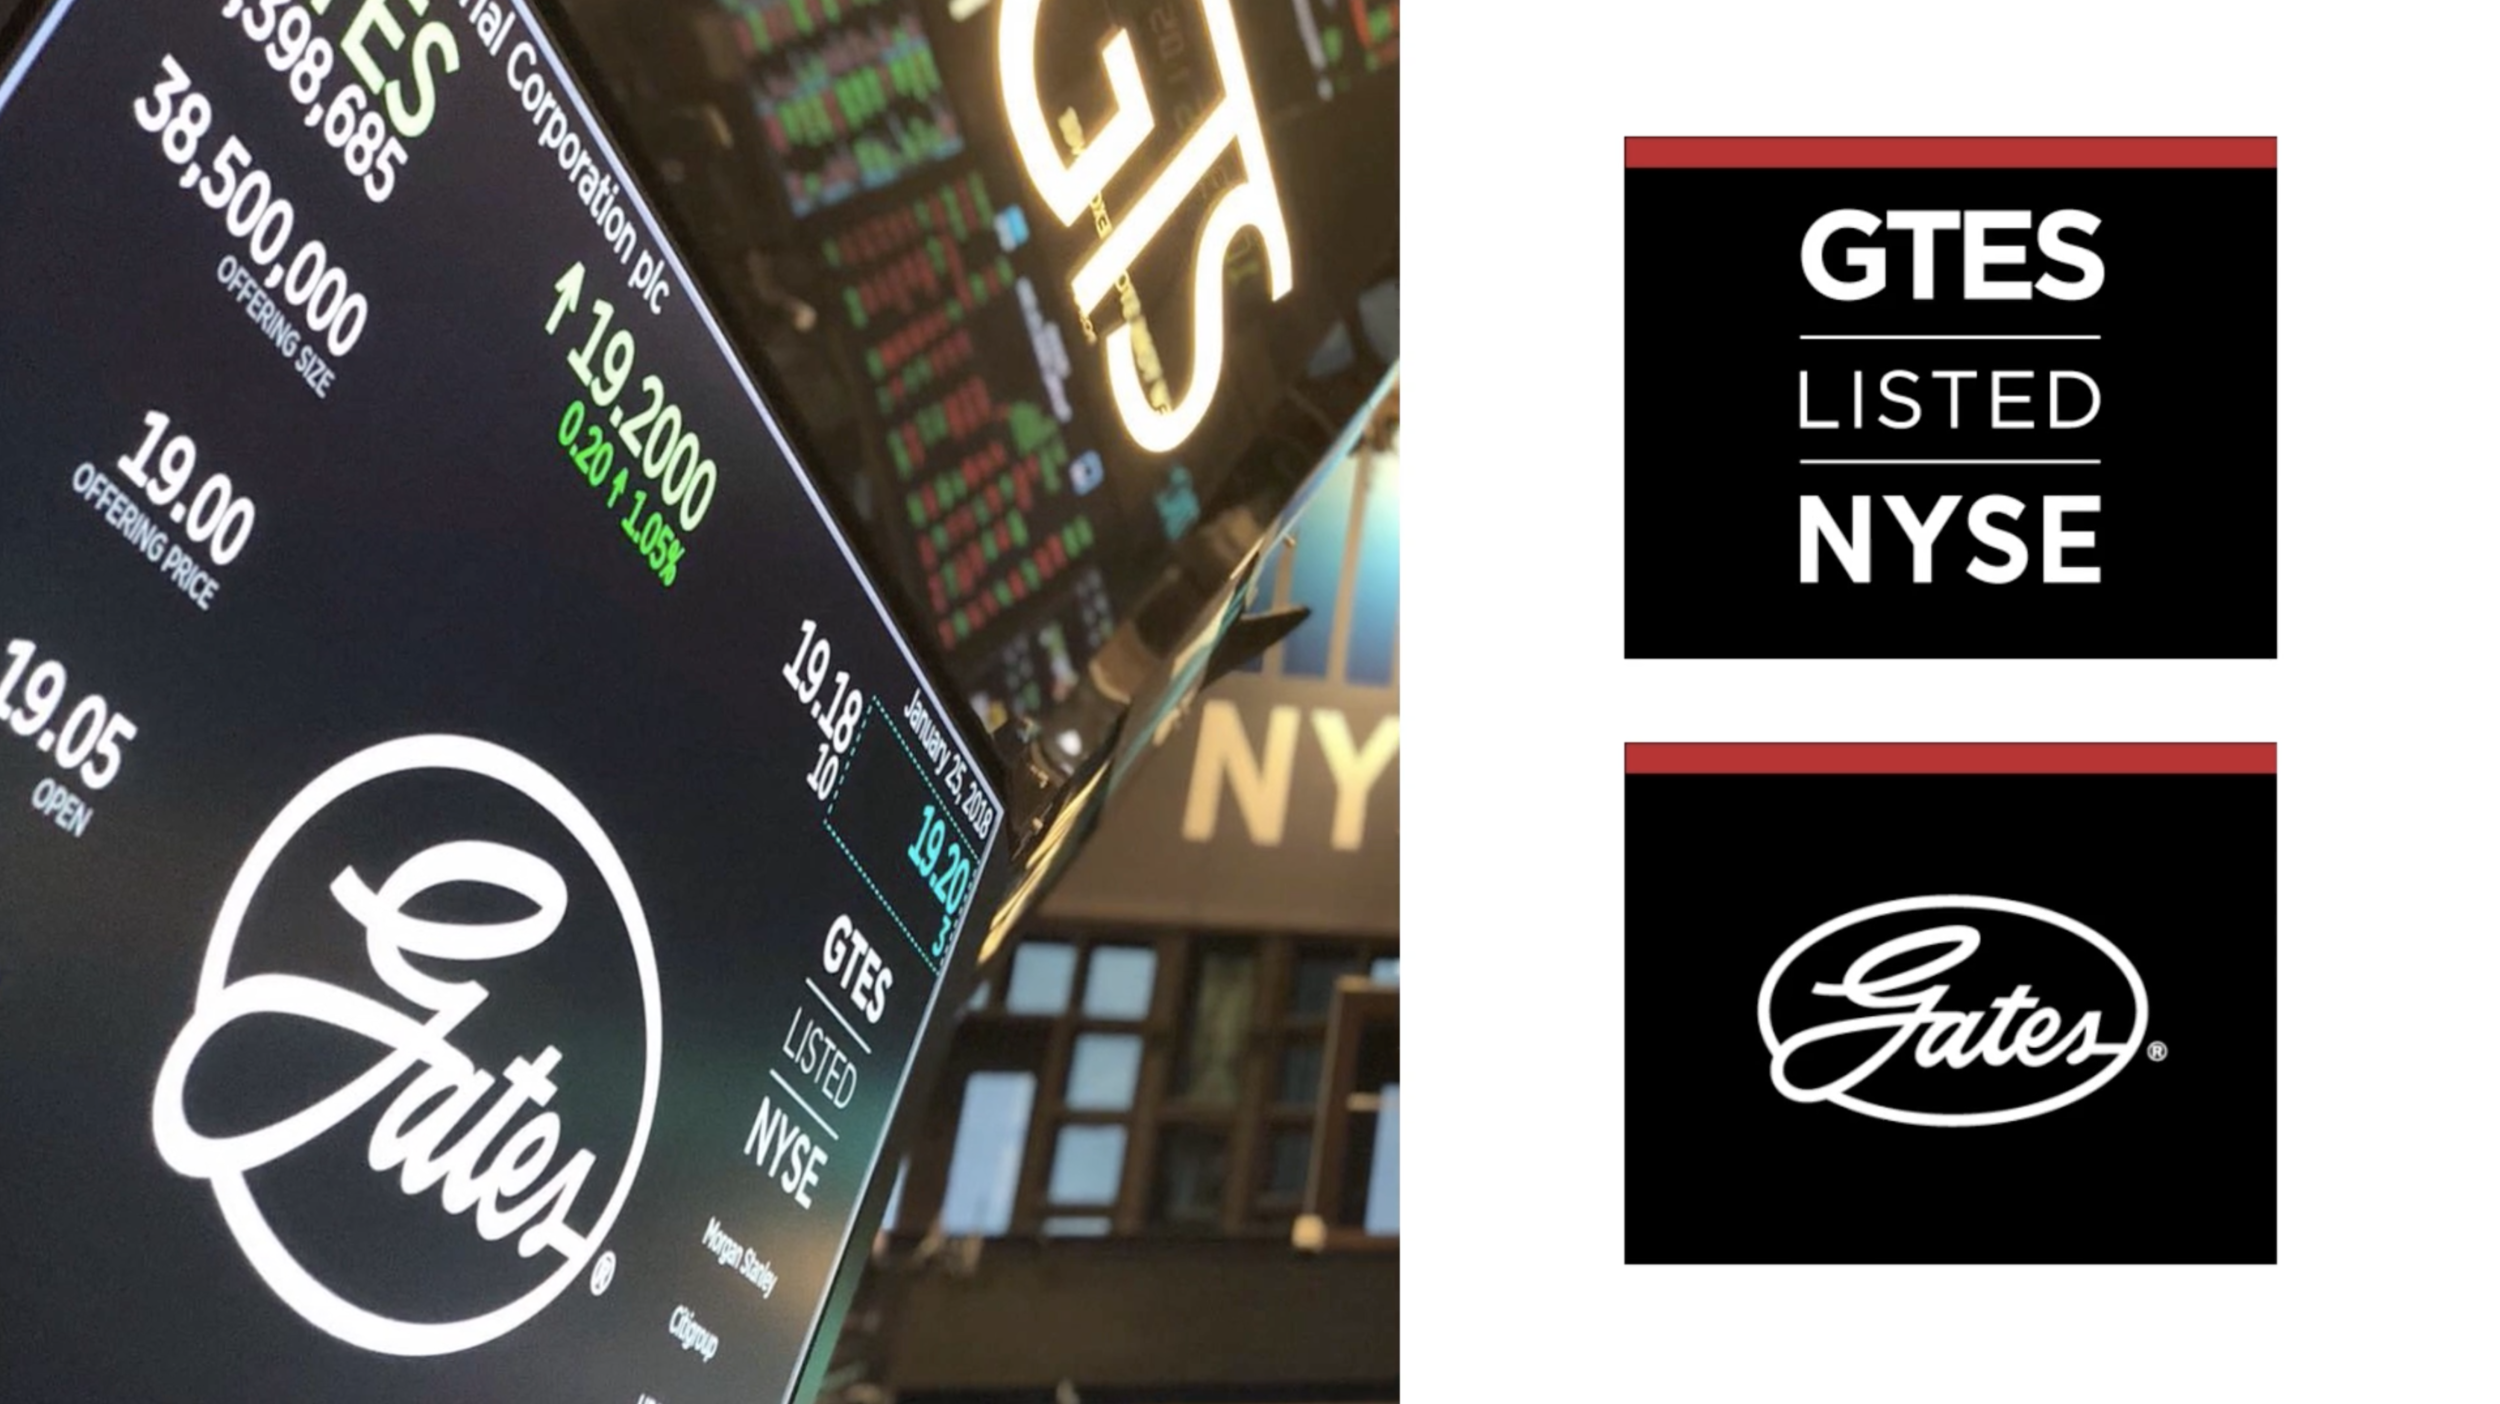 Gates Corporation IPO   Taking a hundred year old industrial brand into the digital age for an IPO is a good trick. Doing it in three weeks? Let's just say it was an all-hands-on-deck situation. With a range of media – video, signage for the NYSE, 3D modeling, subway posters, print ads, digital buzz, social, press packages, broadcast - having experience in a variety of deliverable formats made me a natural to manage this intense, broad-reaching project.